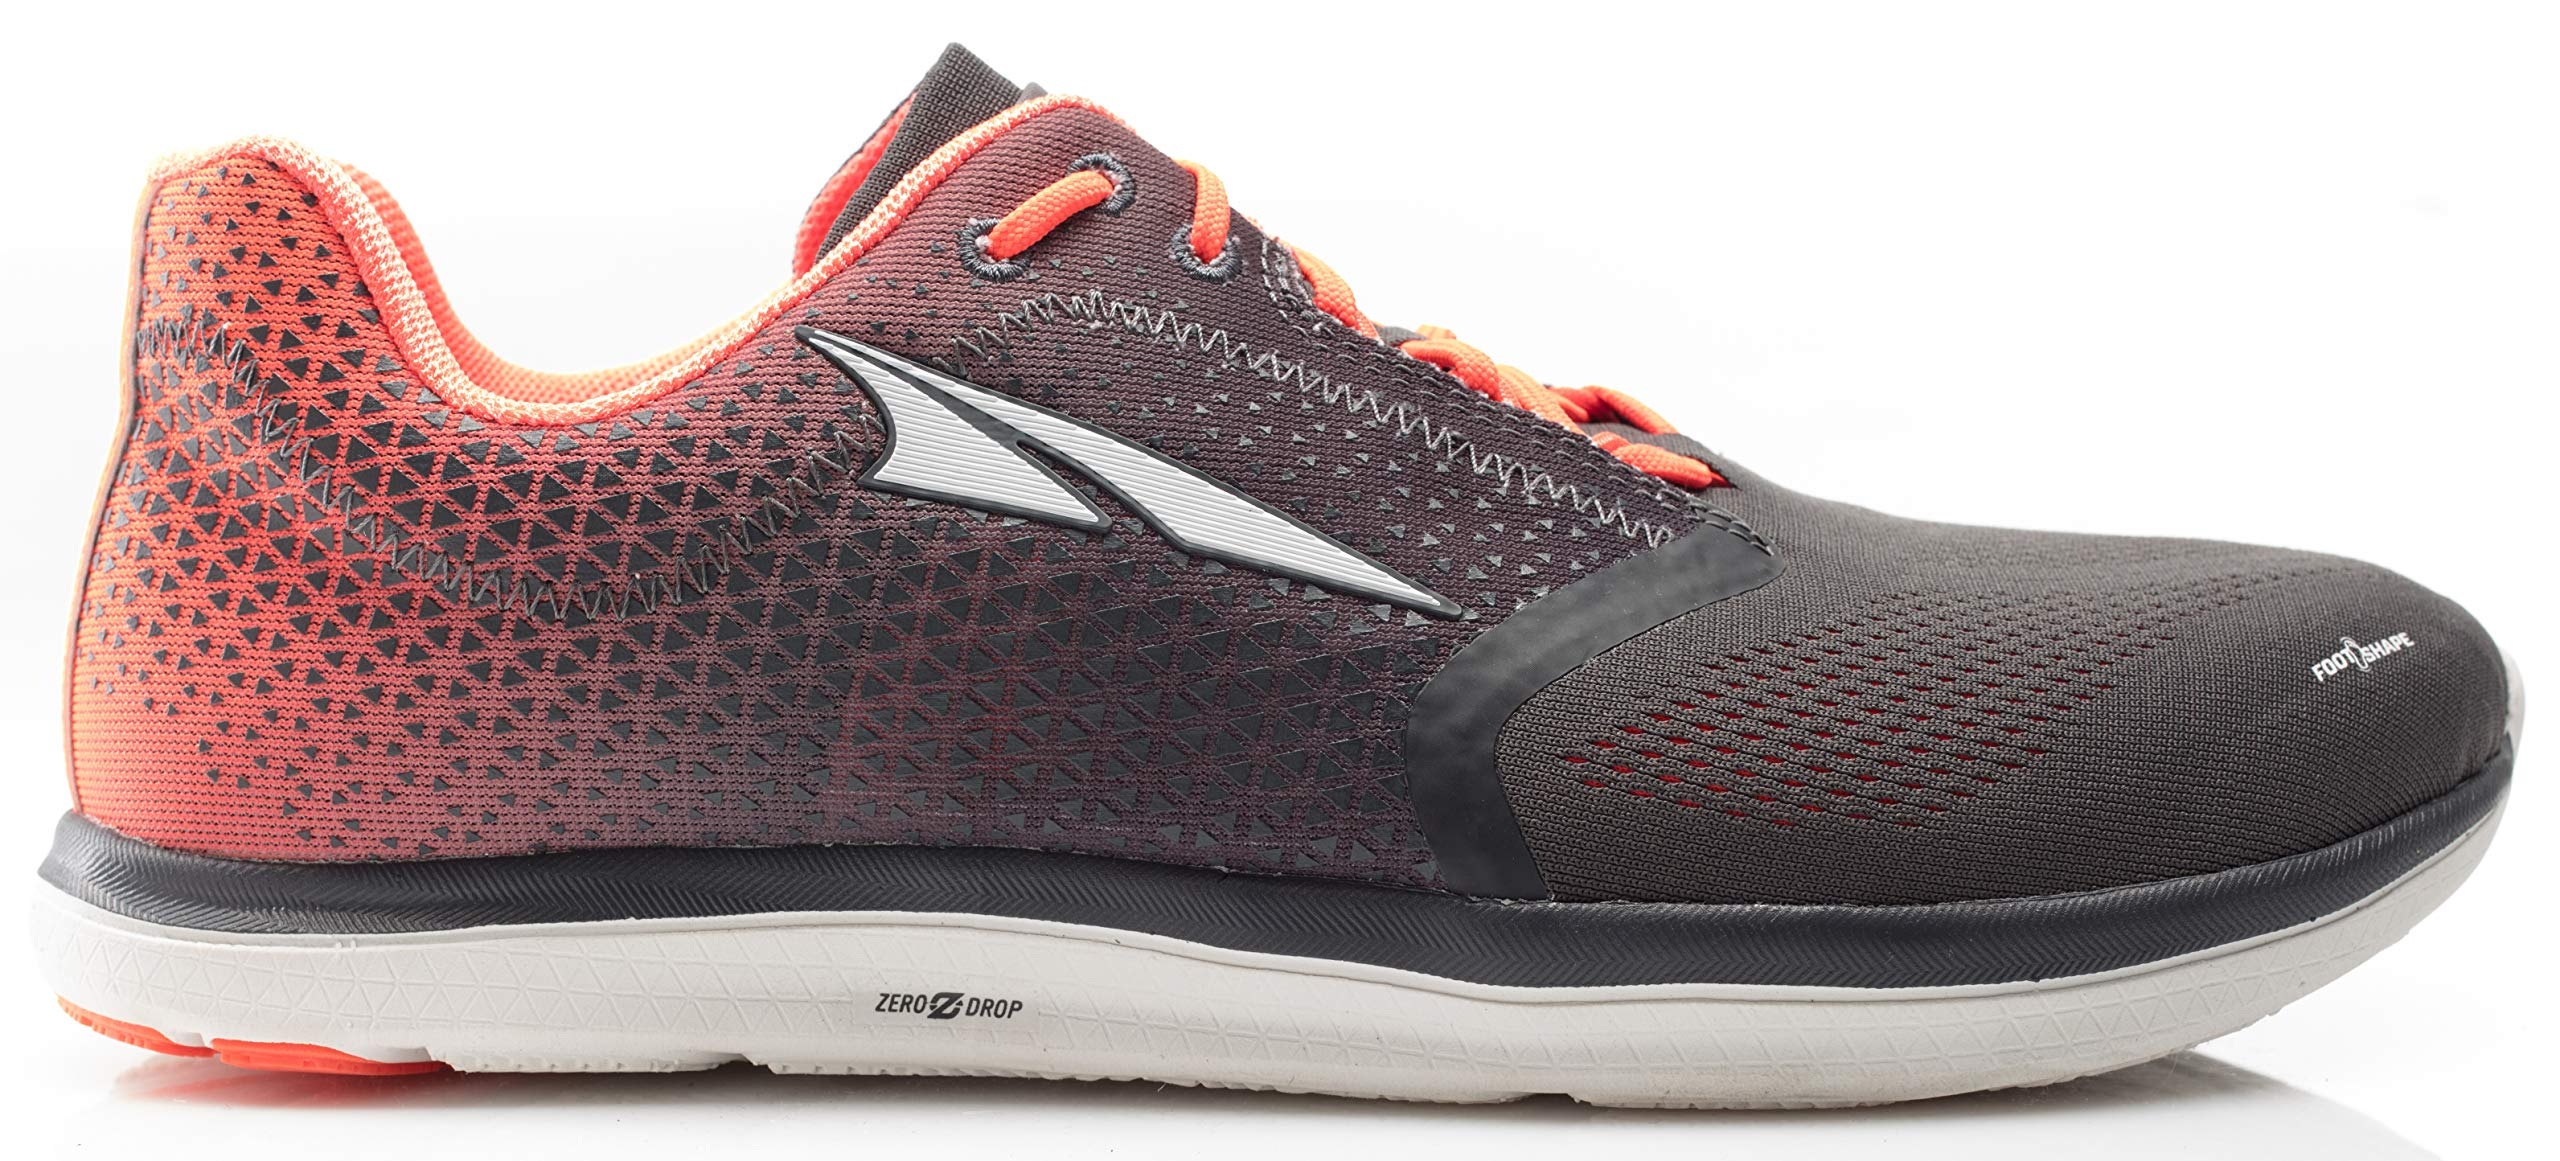 Altra AFM1836P Men's Solstice Road Running Shoe, Gray/Orange - 8 M US